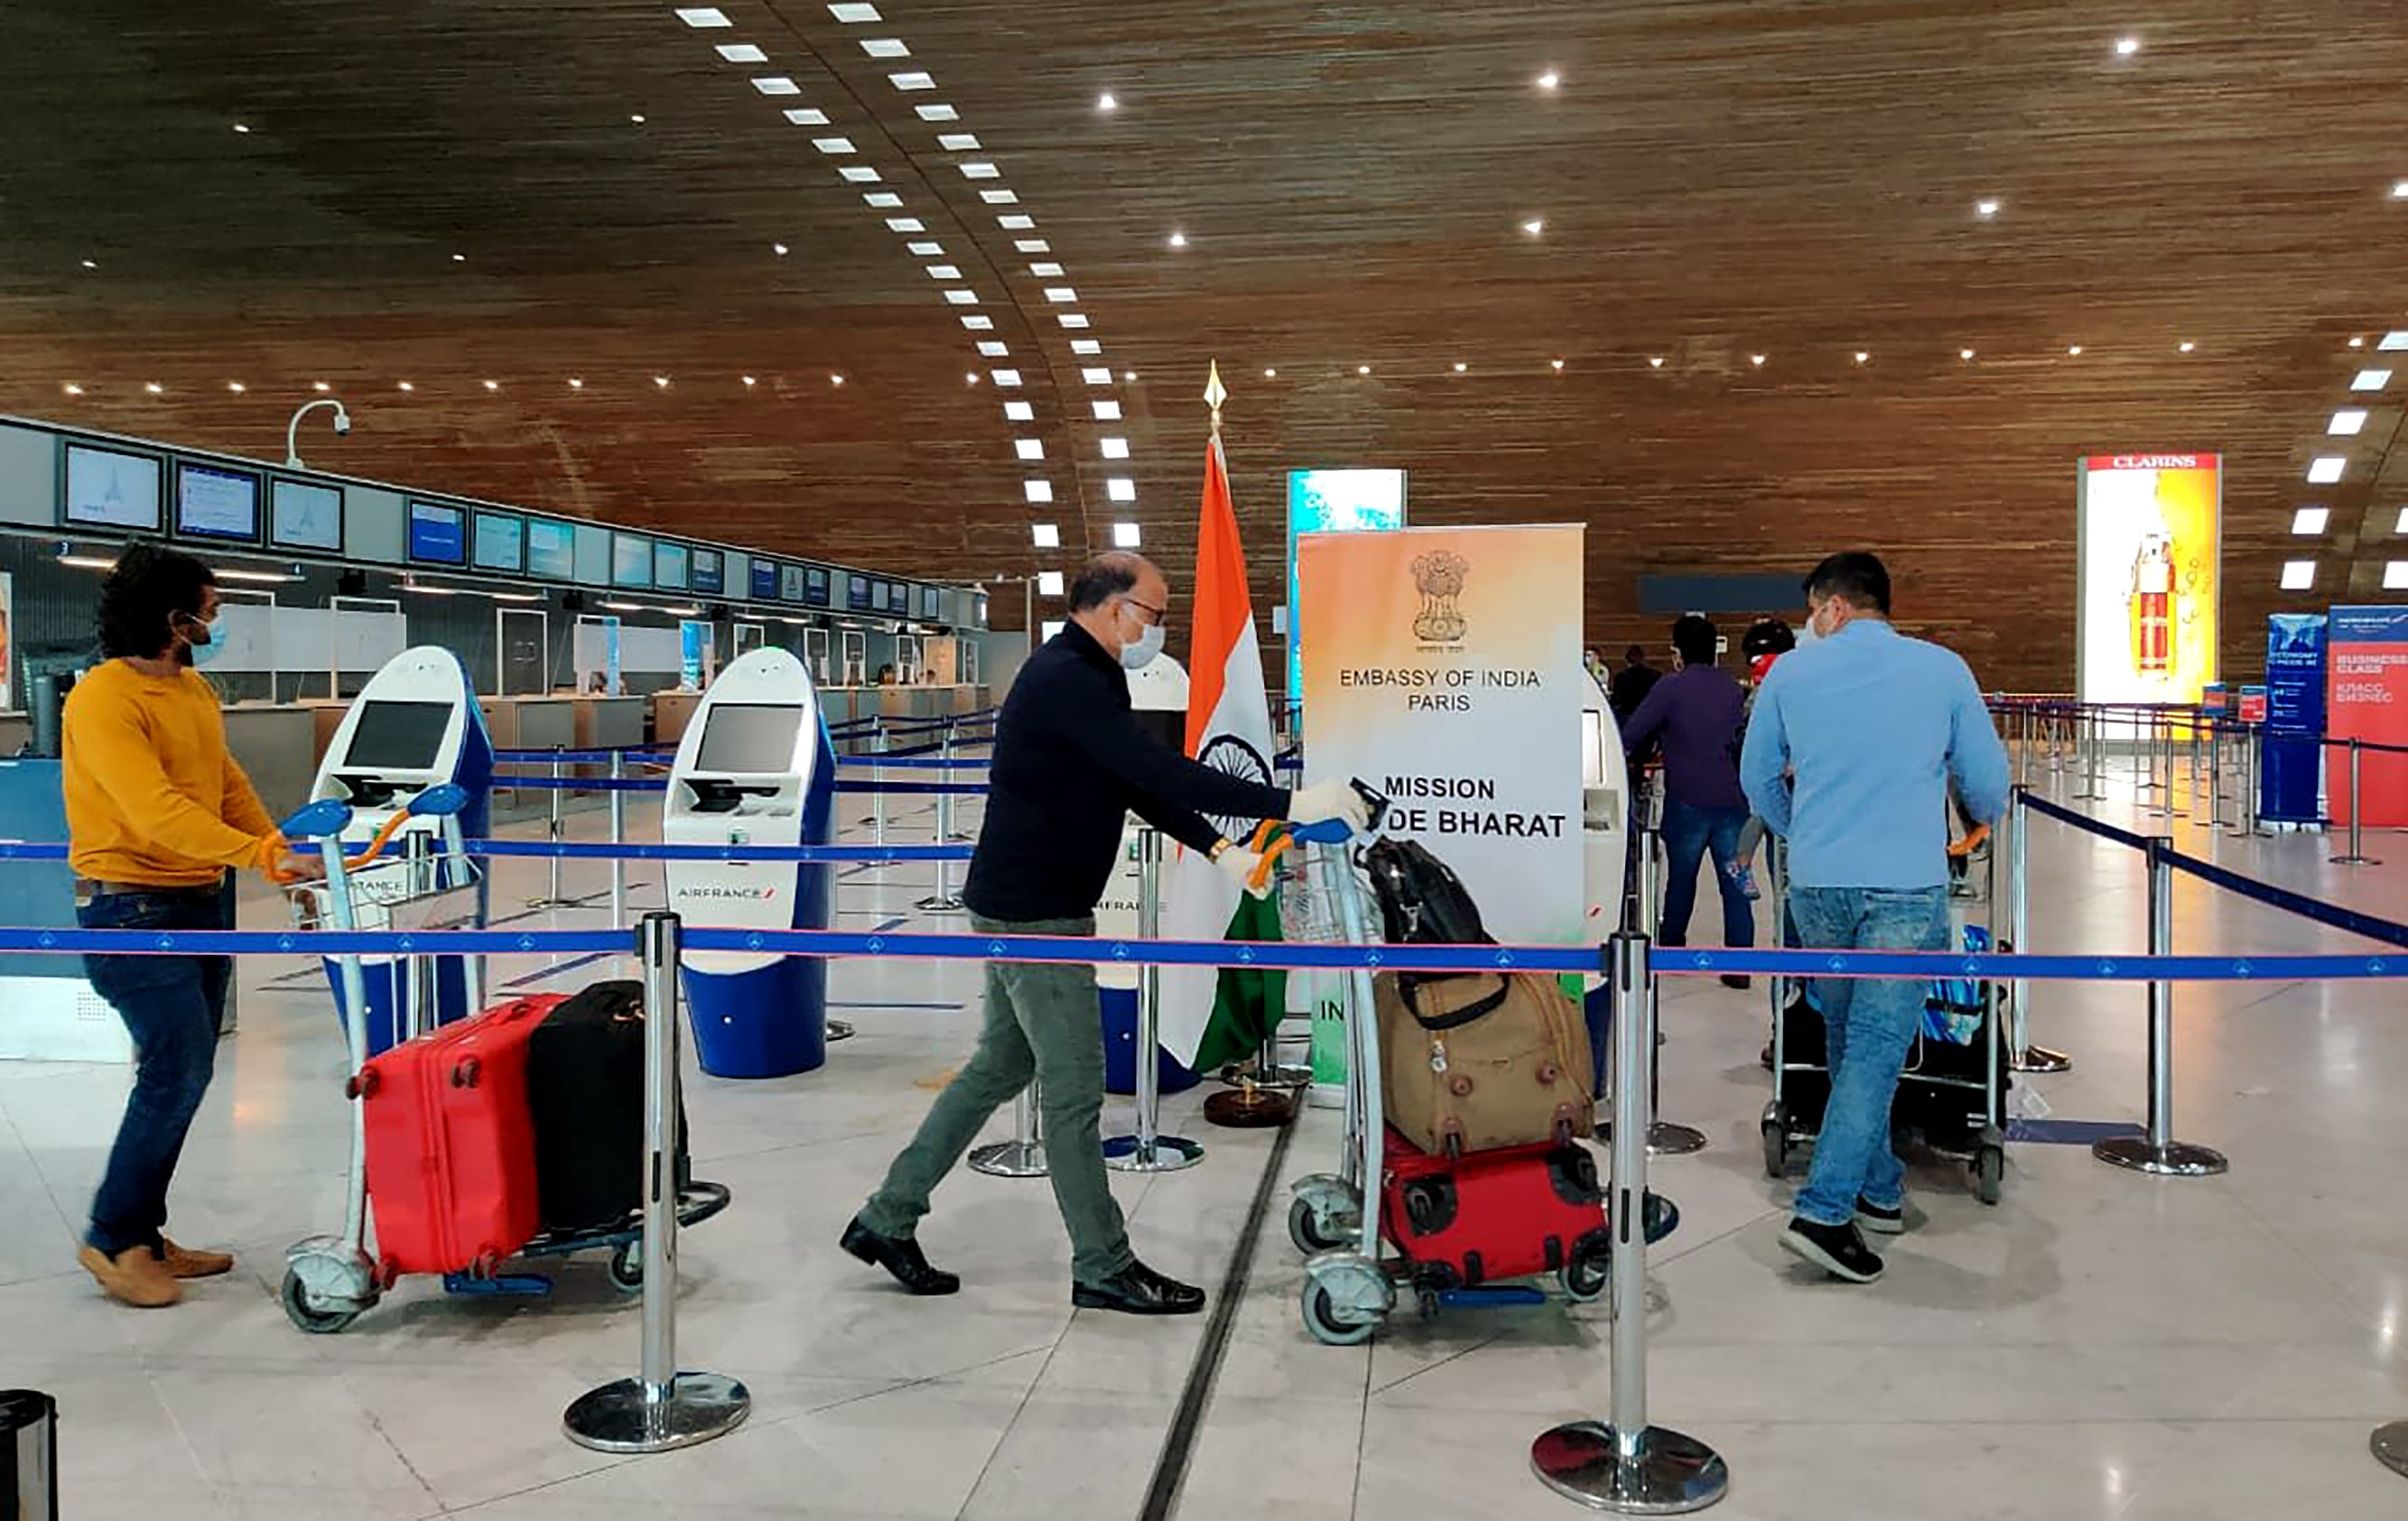 Stranded Indian nationals arrive to board a special Air India flight from Paris Charles de Gaulle airport for Kochi, in Paris